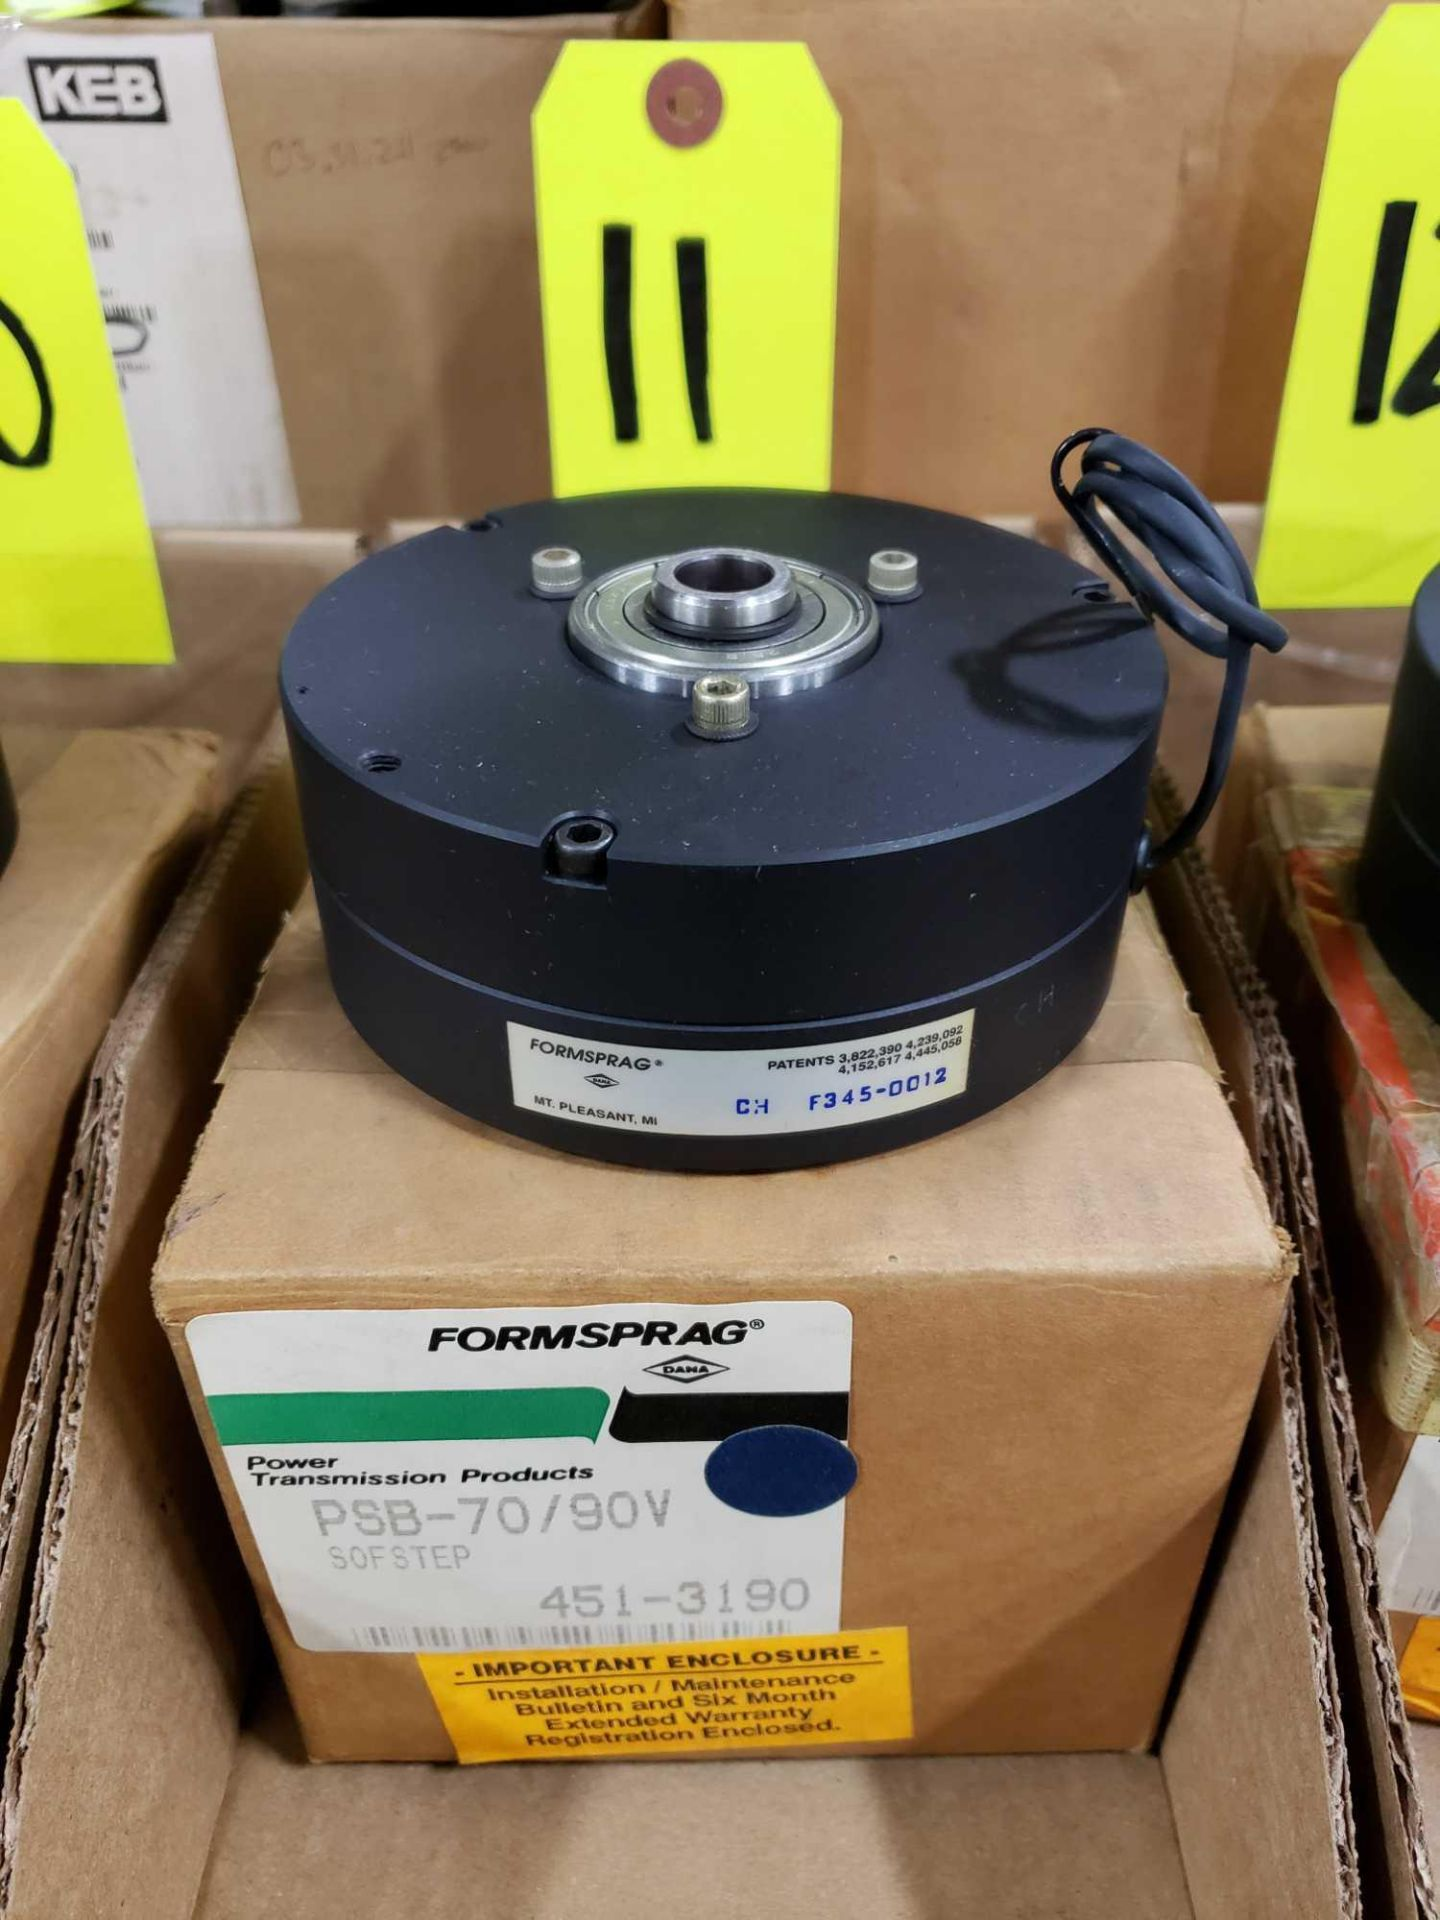 Lot 11 - Formsprag Magpowr sofstep model PSB-70/90V magnetic partical clutch brake. New in box.